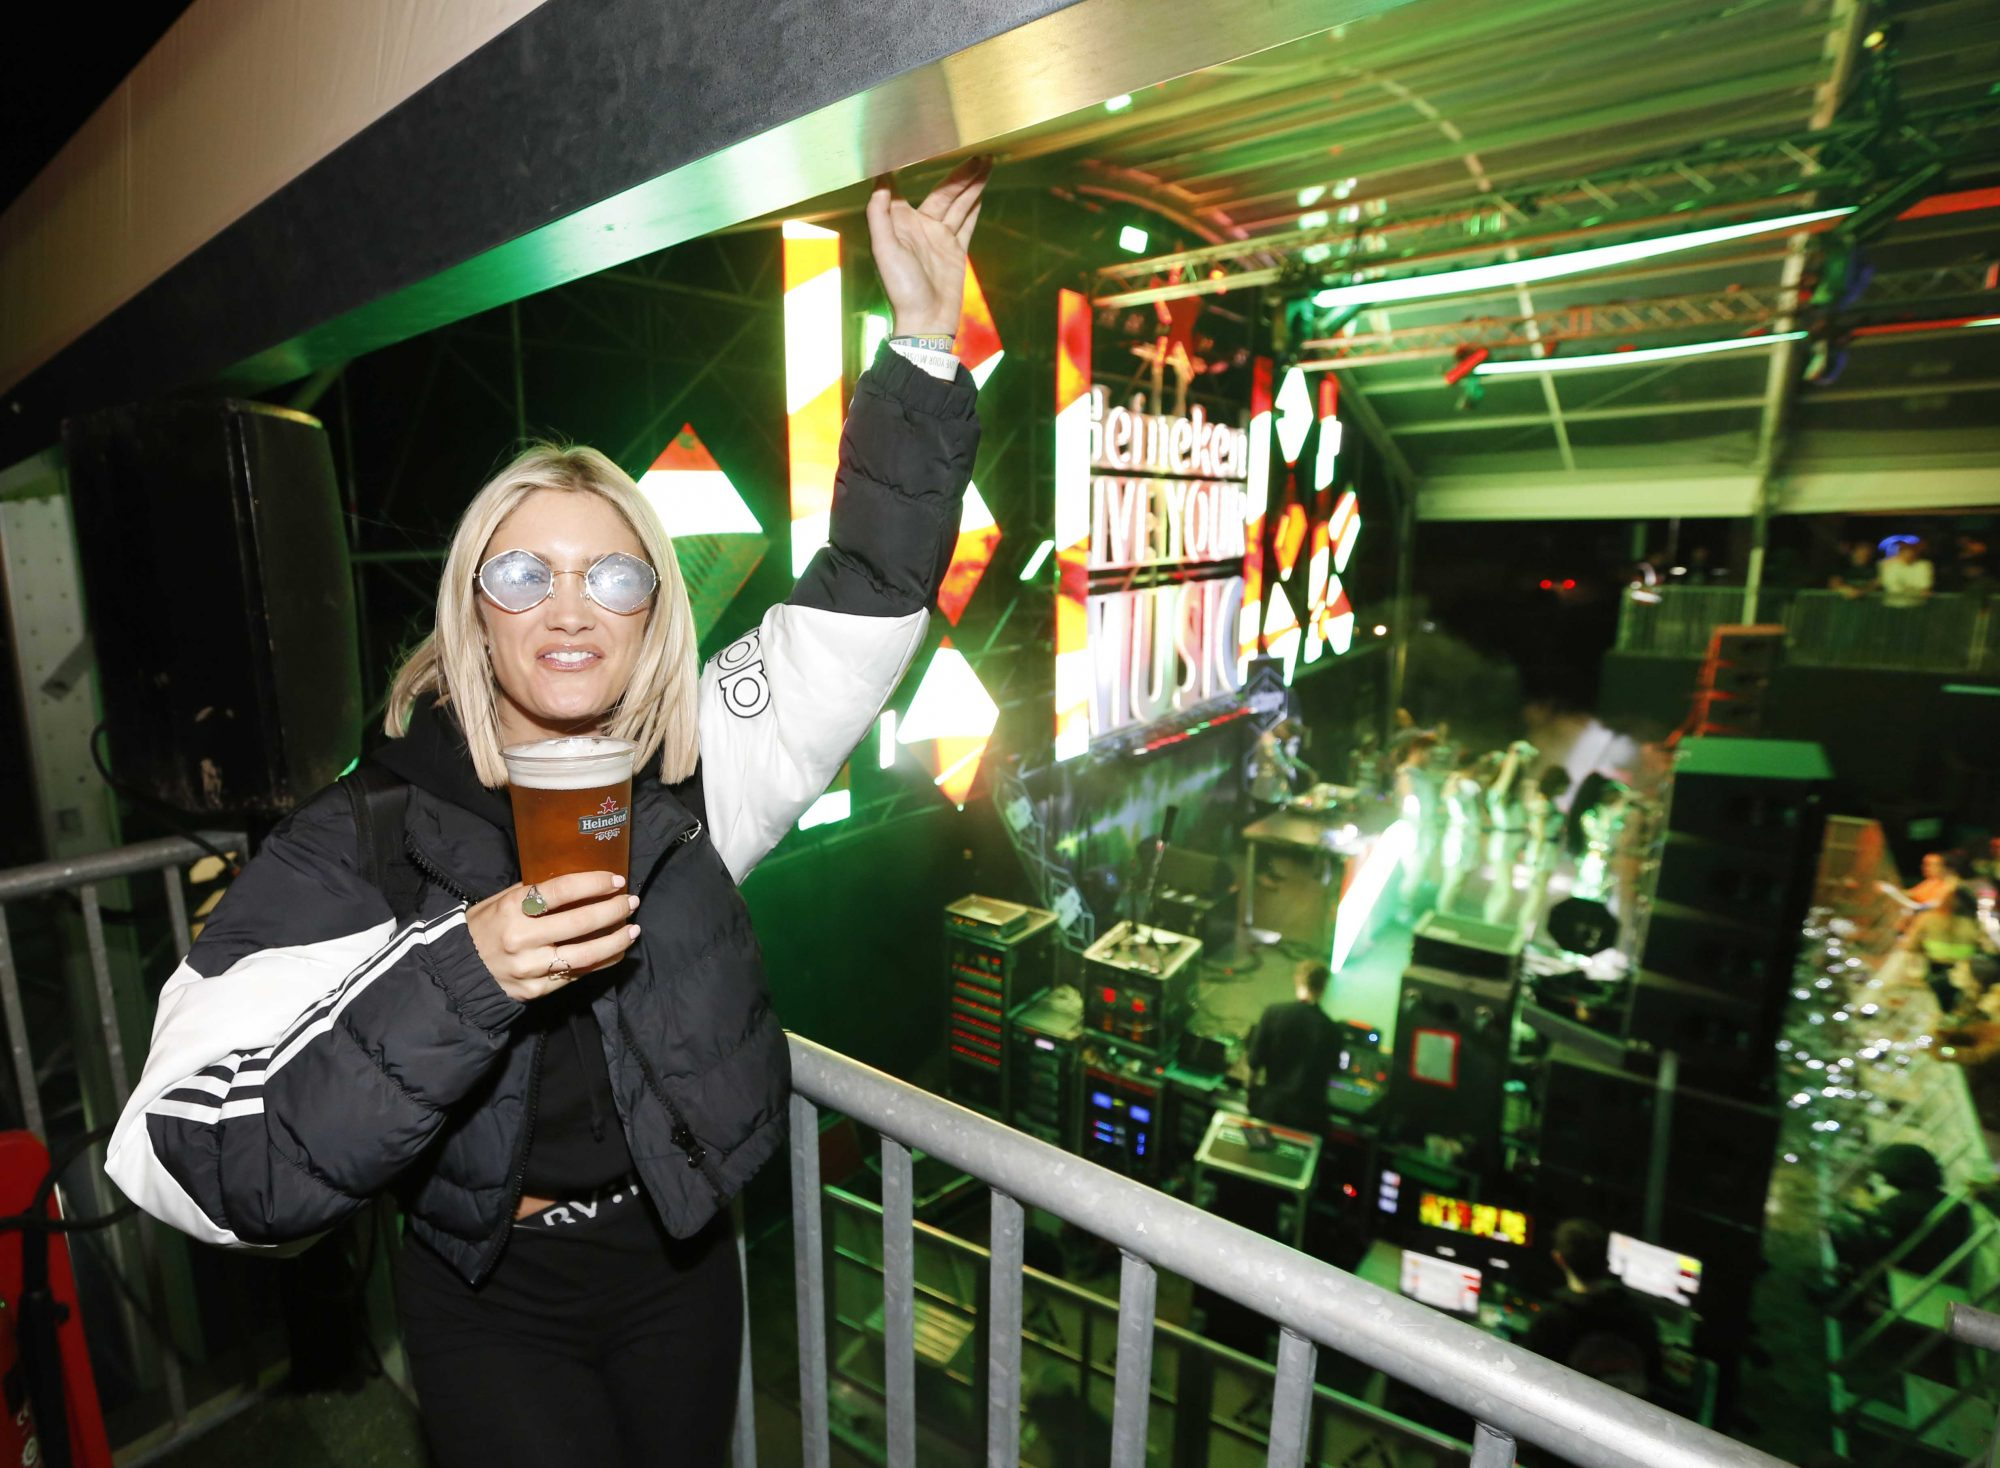 NO REPRO FEE 30/08/2019 Heineken Live Your Music Stage at Electric Picnic 2019. Pictured is Niamh Cullen at the Heineken Live Your Music Stage at Electric Picnic 2019. This year's area is an enormous structure on two levels, with a glass roof that will keep festival-goers dry but let them dance beneath the sun and stars! The immersive and interactive lightshow has been reimagined for 2019 which, combined with the state-of-the-art soundsystem, make Live Your Music the most impressive festival stage in the country. Photo: Sasko Lazarov/Phorocall Ireland